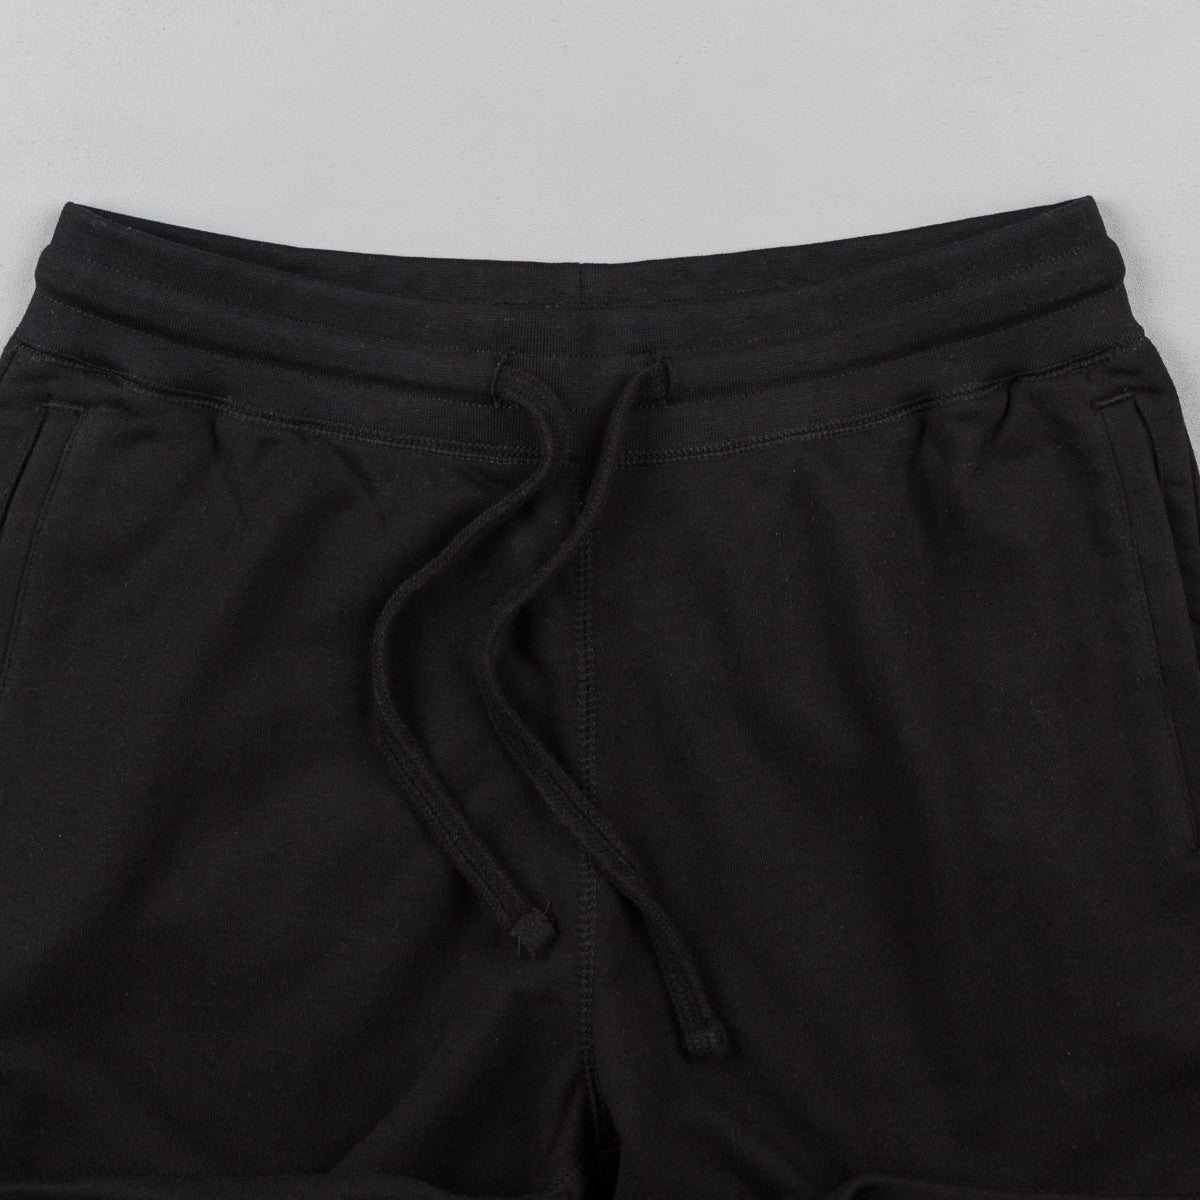 HUF Classic H Fleece Shorts - Black